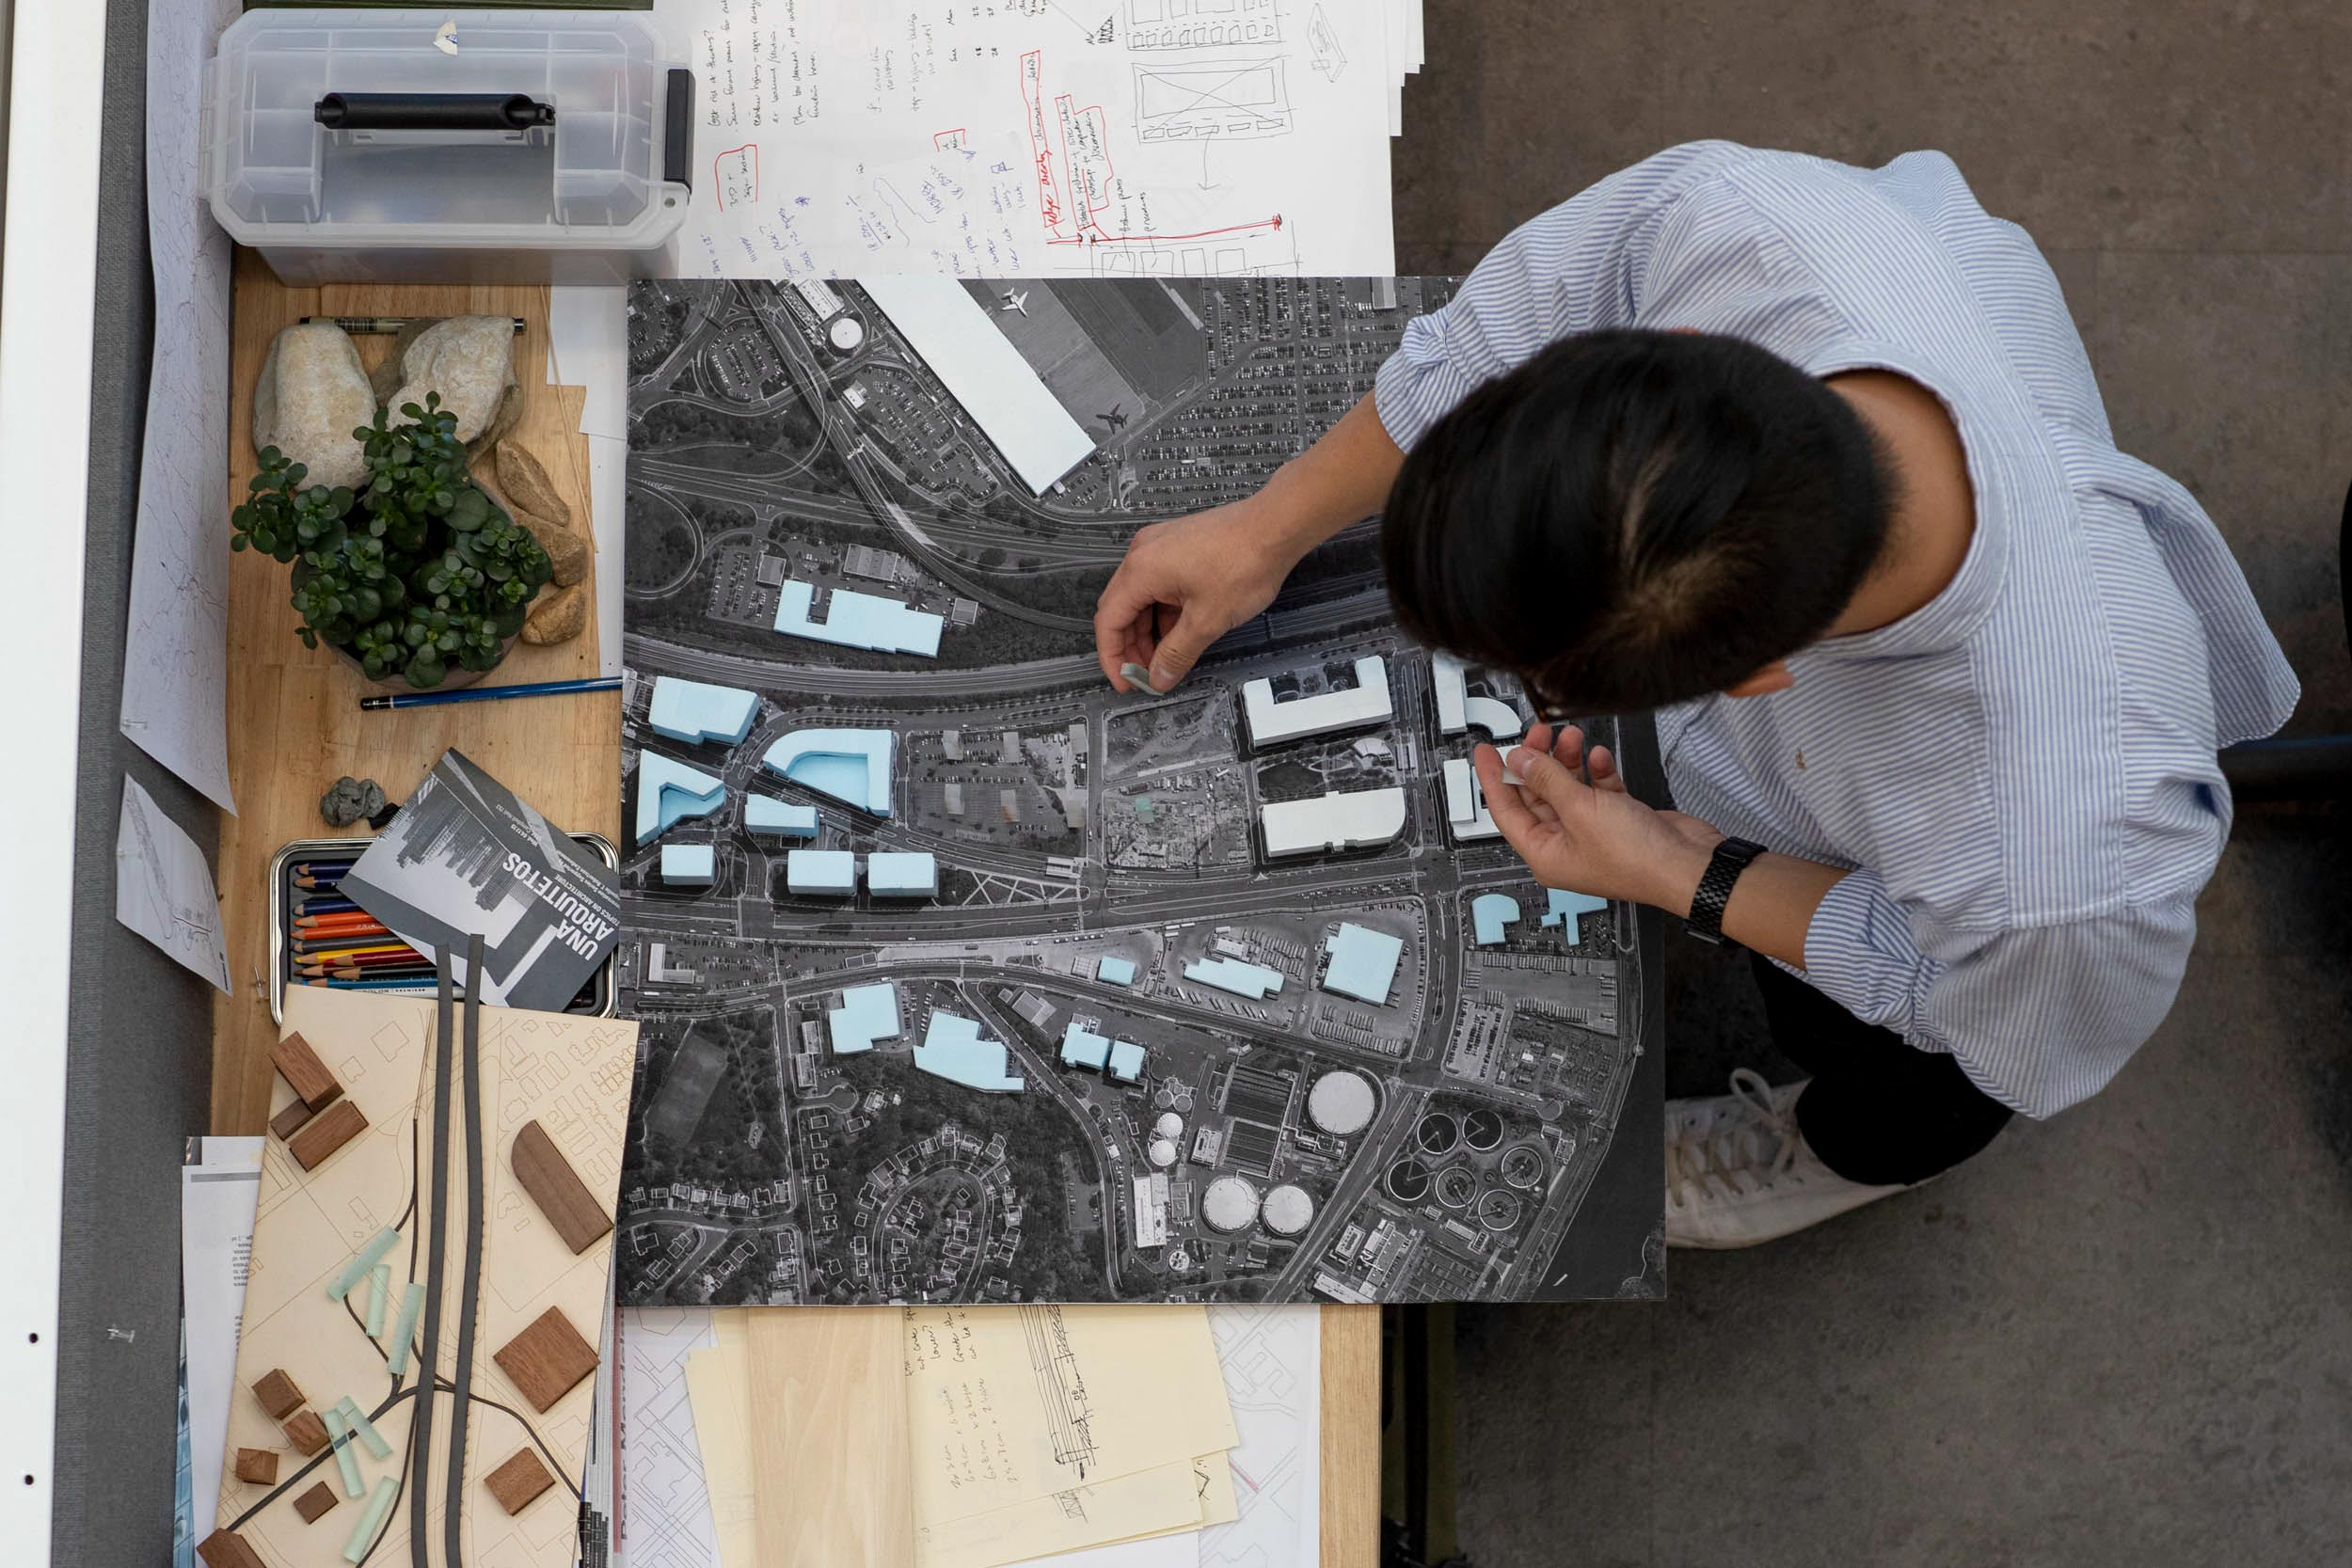 Shim works on his thesis project, a model of affordable housing units designed to accommodate Amazon workers flowing into Crystal City for the company's second headquarters.